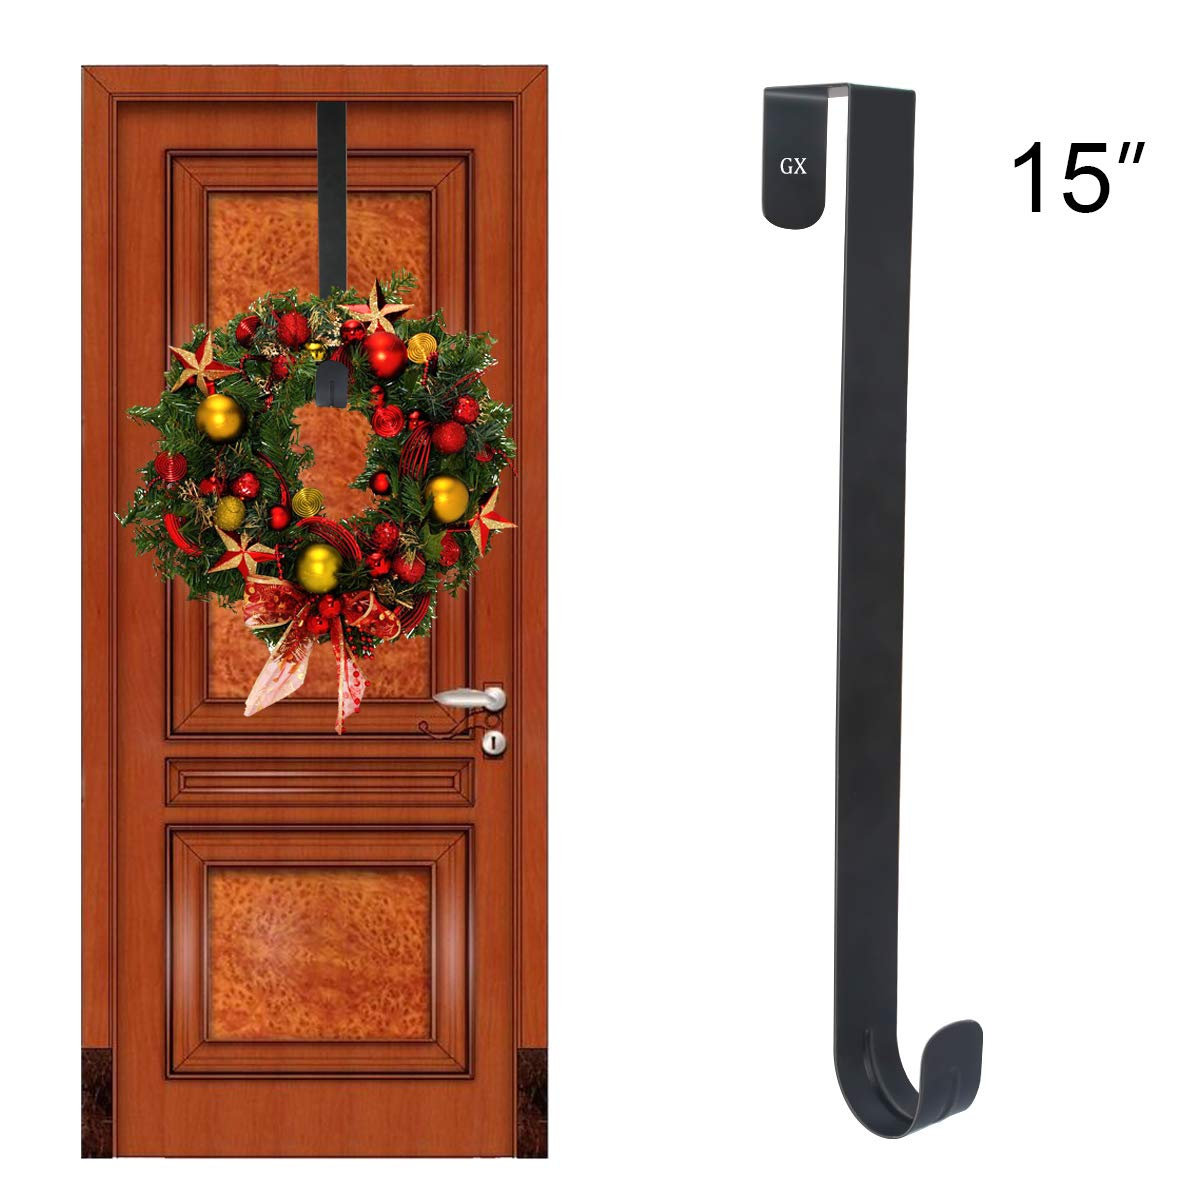 Amazon.com: GameXcel Wreath Hanger Over The Door - Larger Wreath ...